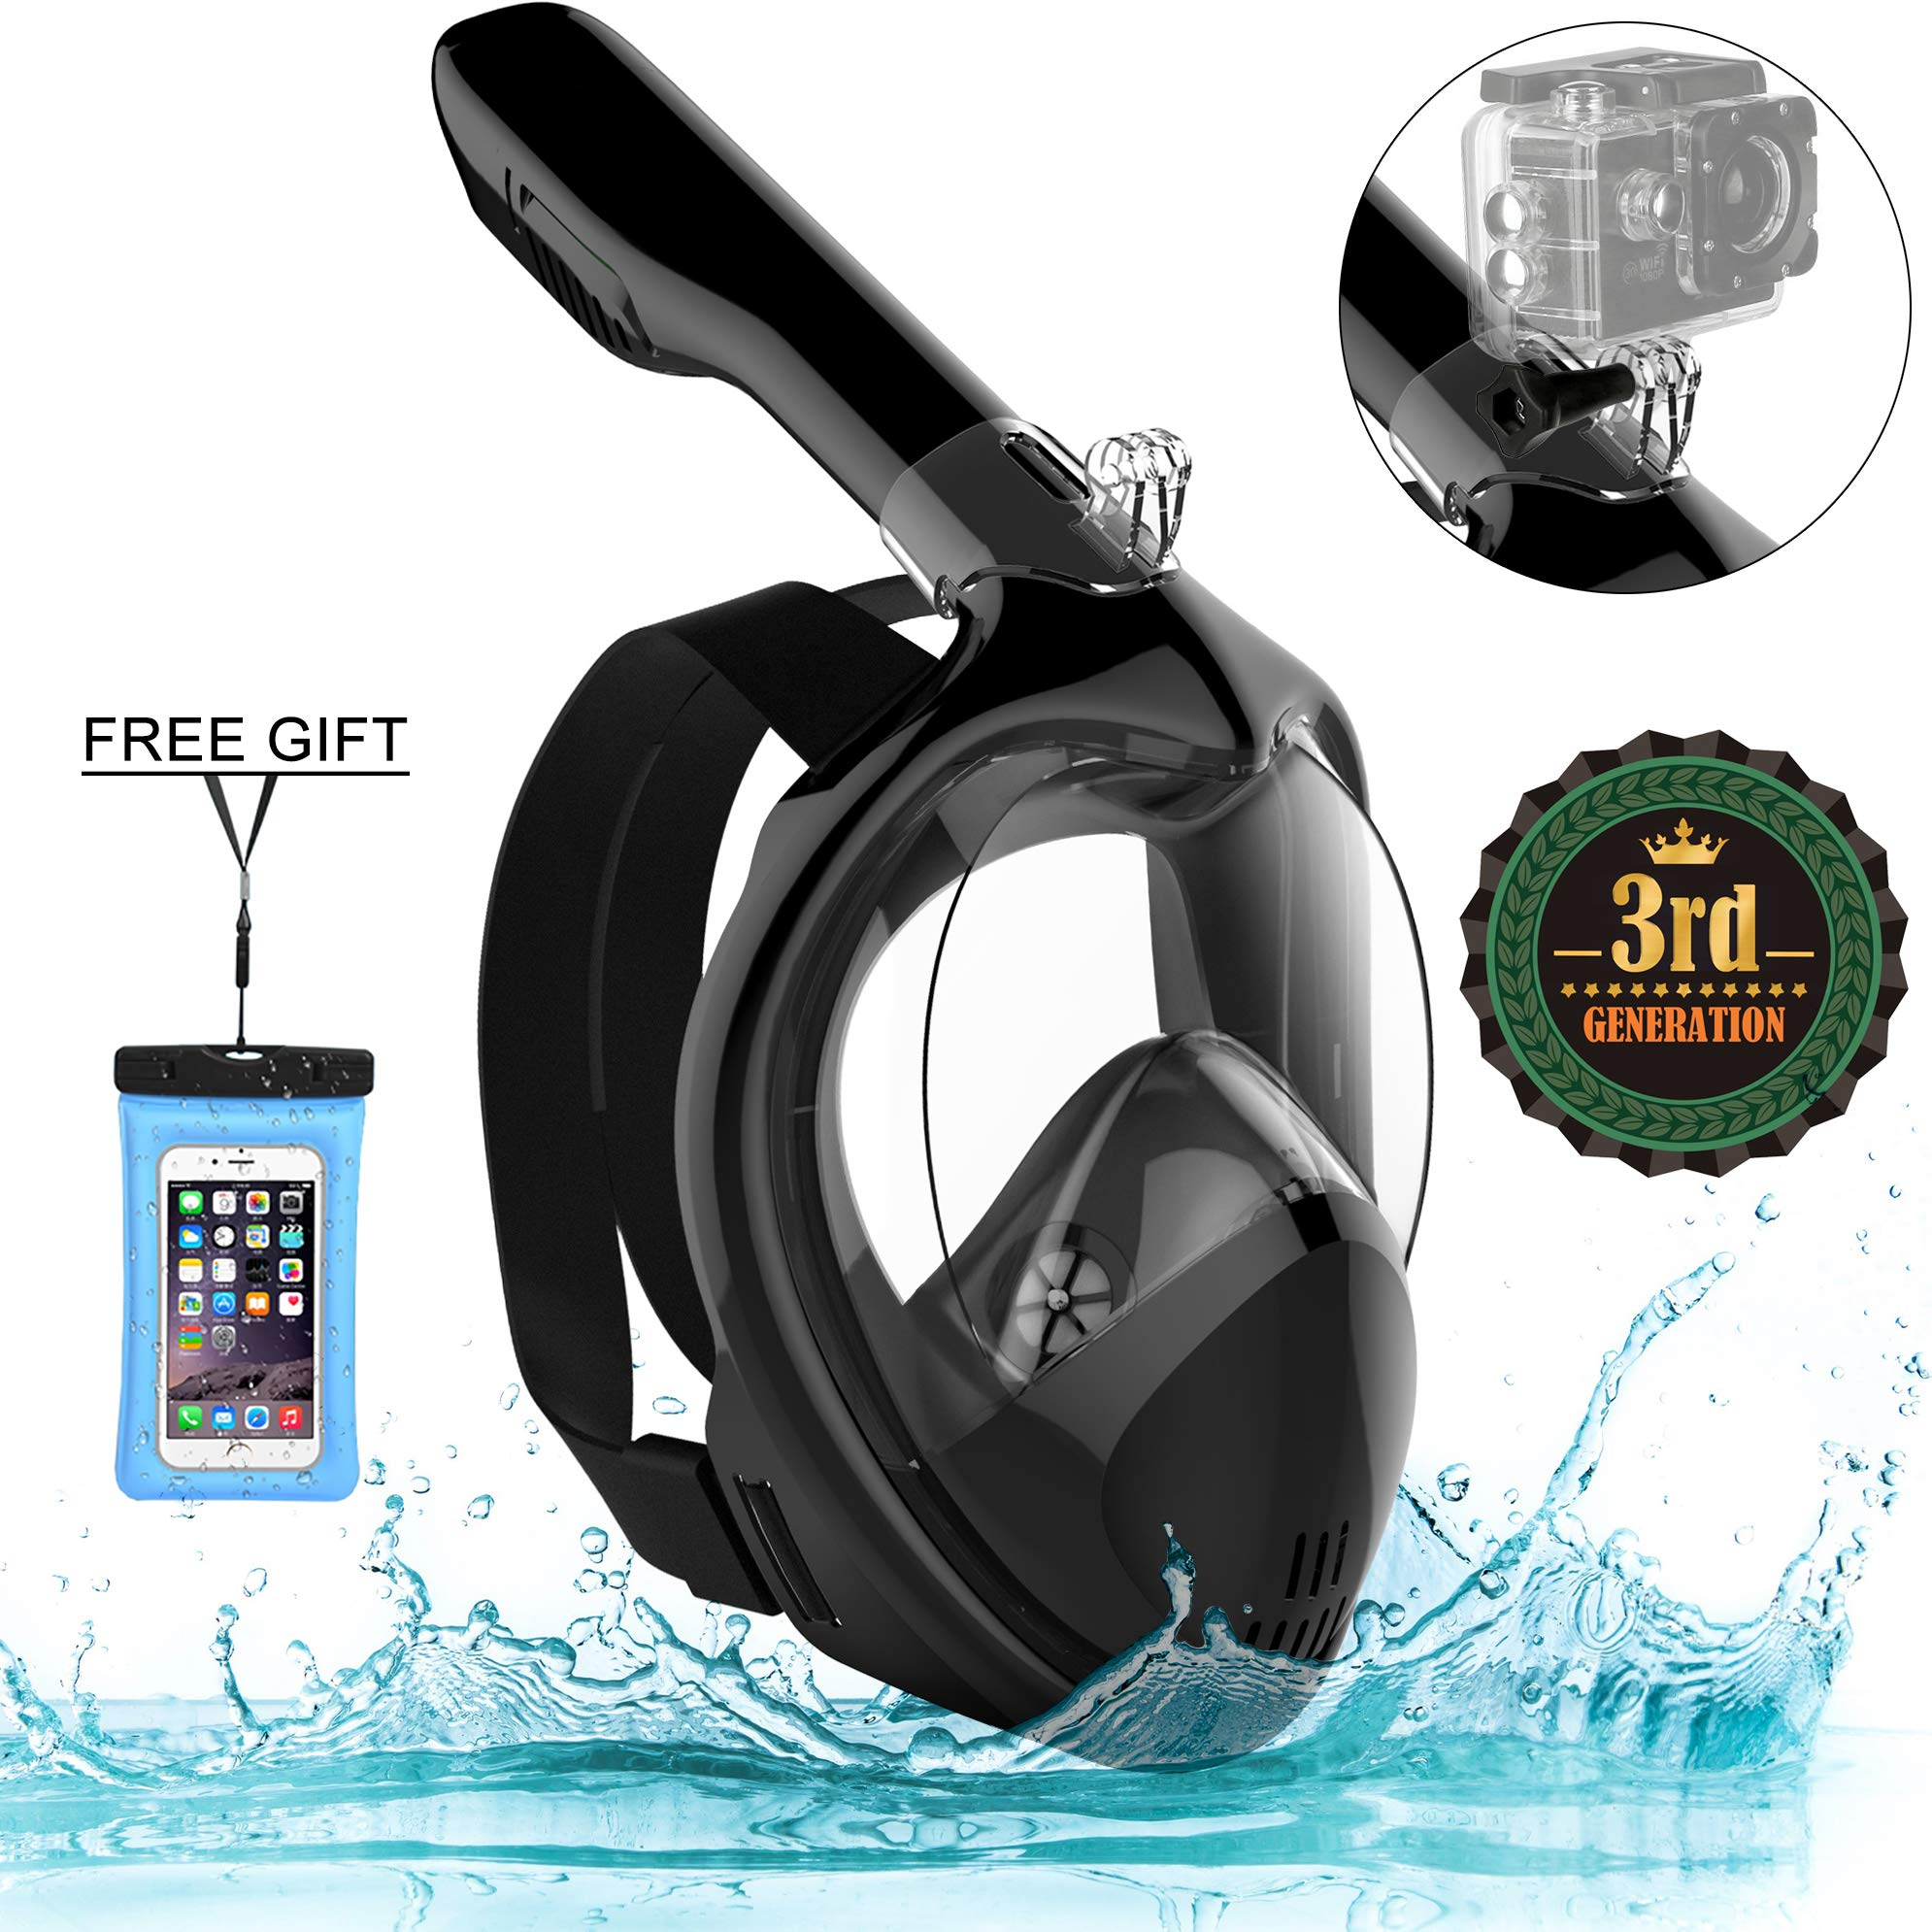 Poppin Kicks Full Face Snorkel Mask for Adult Youth and Kids | 180° Panoramic View Anti-Fog Anti-Leak Easy Breathe GoPro Compatible w/Detachable Camera Mount (Deluxe Black, Large/X-Large) by Poppin Kicks